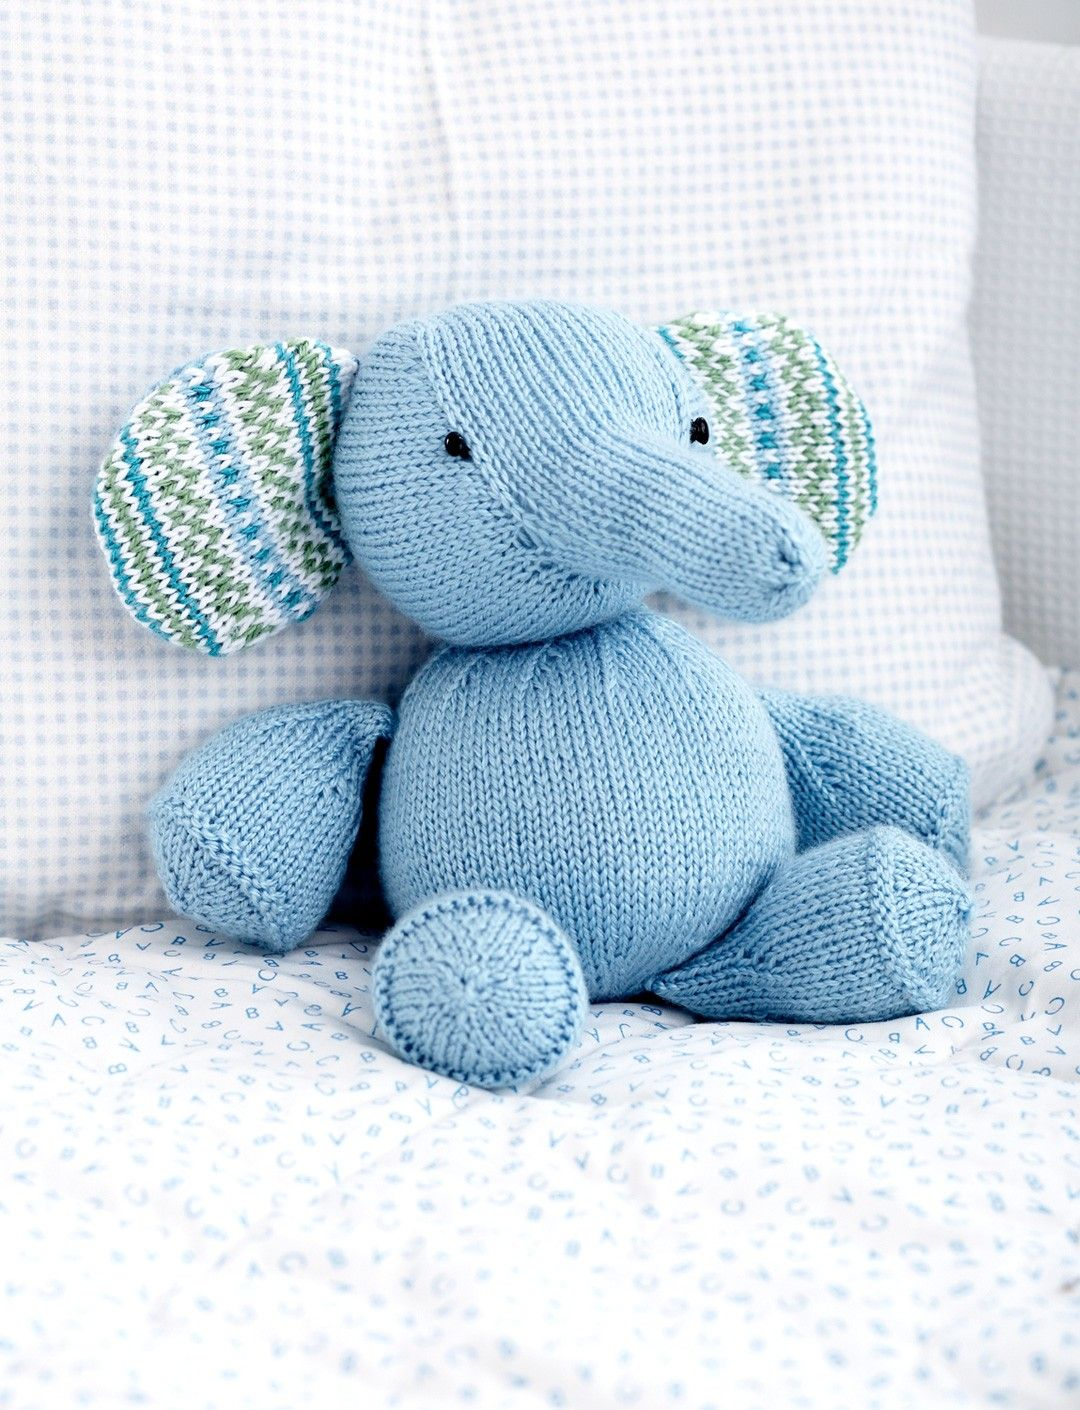 Toy Elephant Knitting Pattern (paid) | Knit and Crochet | Pinterest ...